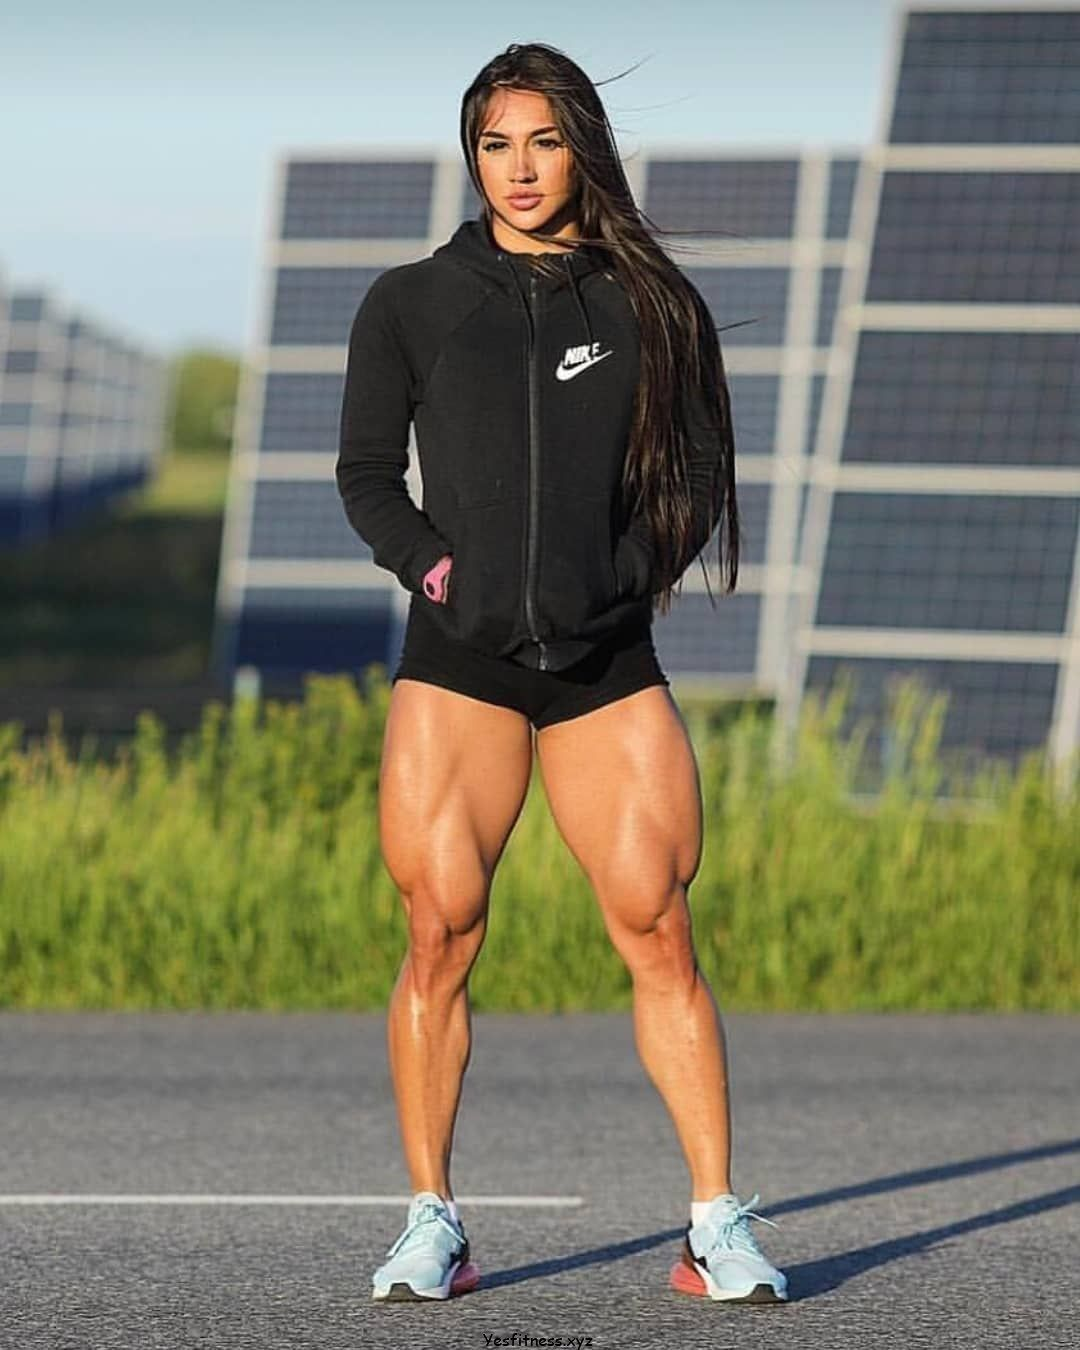 Is a cute Celebrites Bakhar Nabieva naked photo 2017